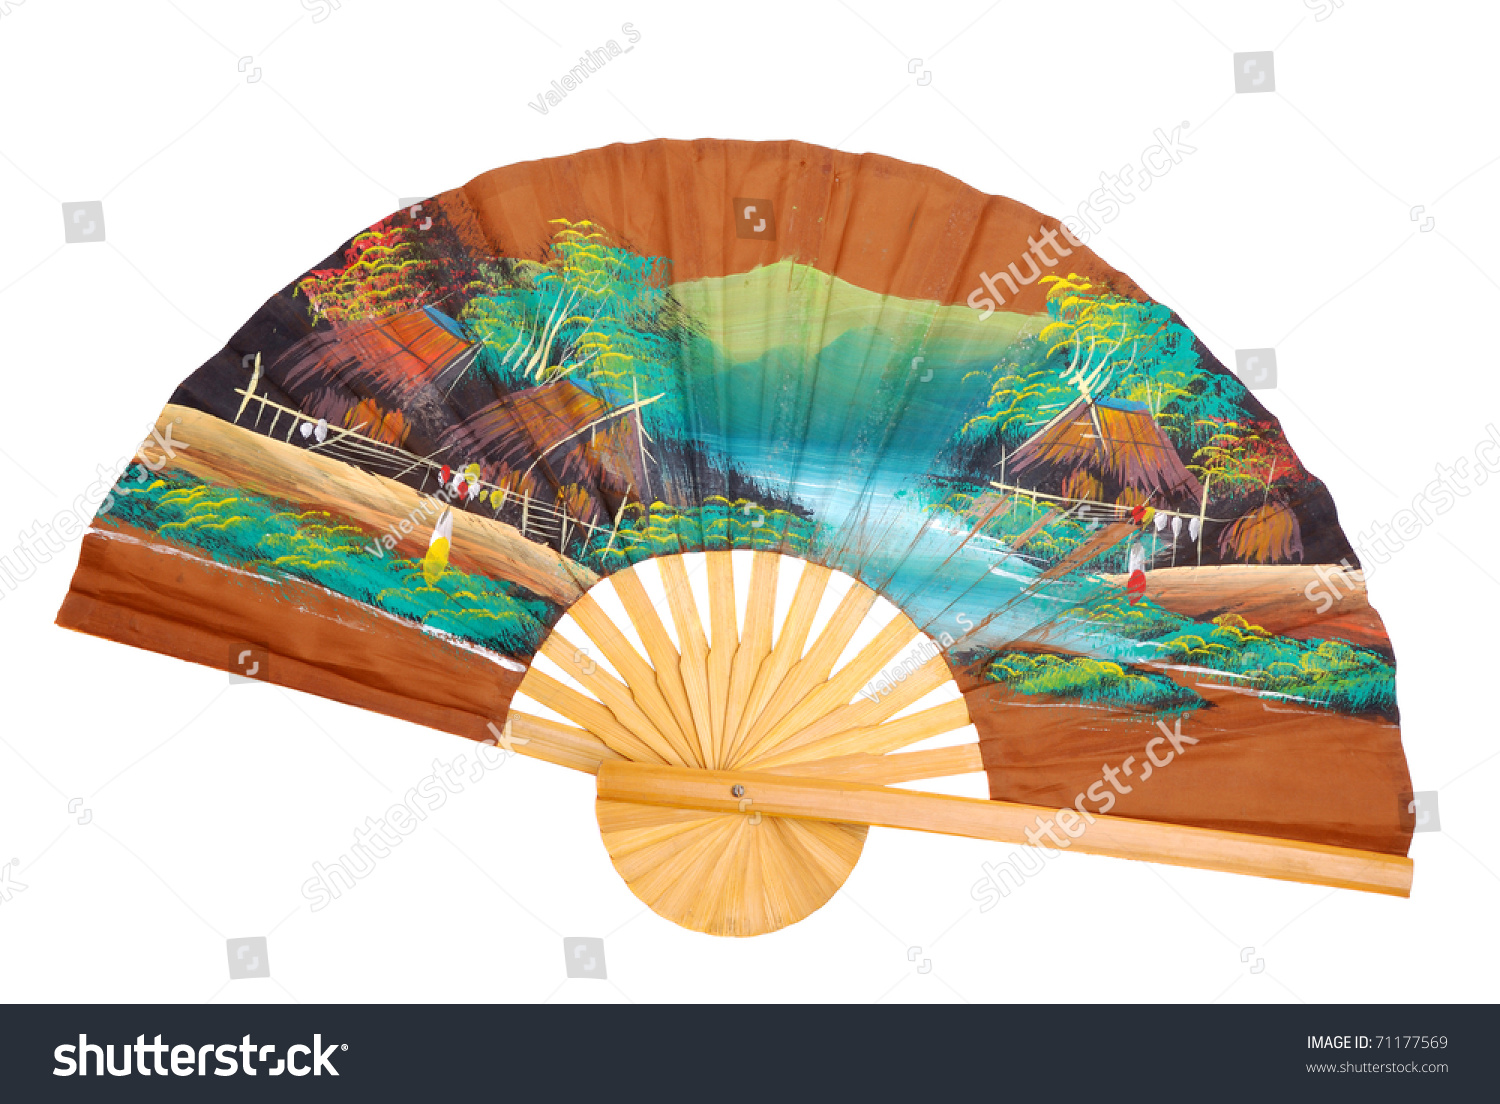 chinese decorative fan on a white background - Decorative Fans